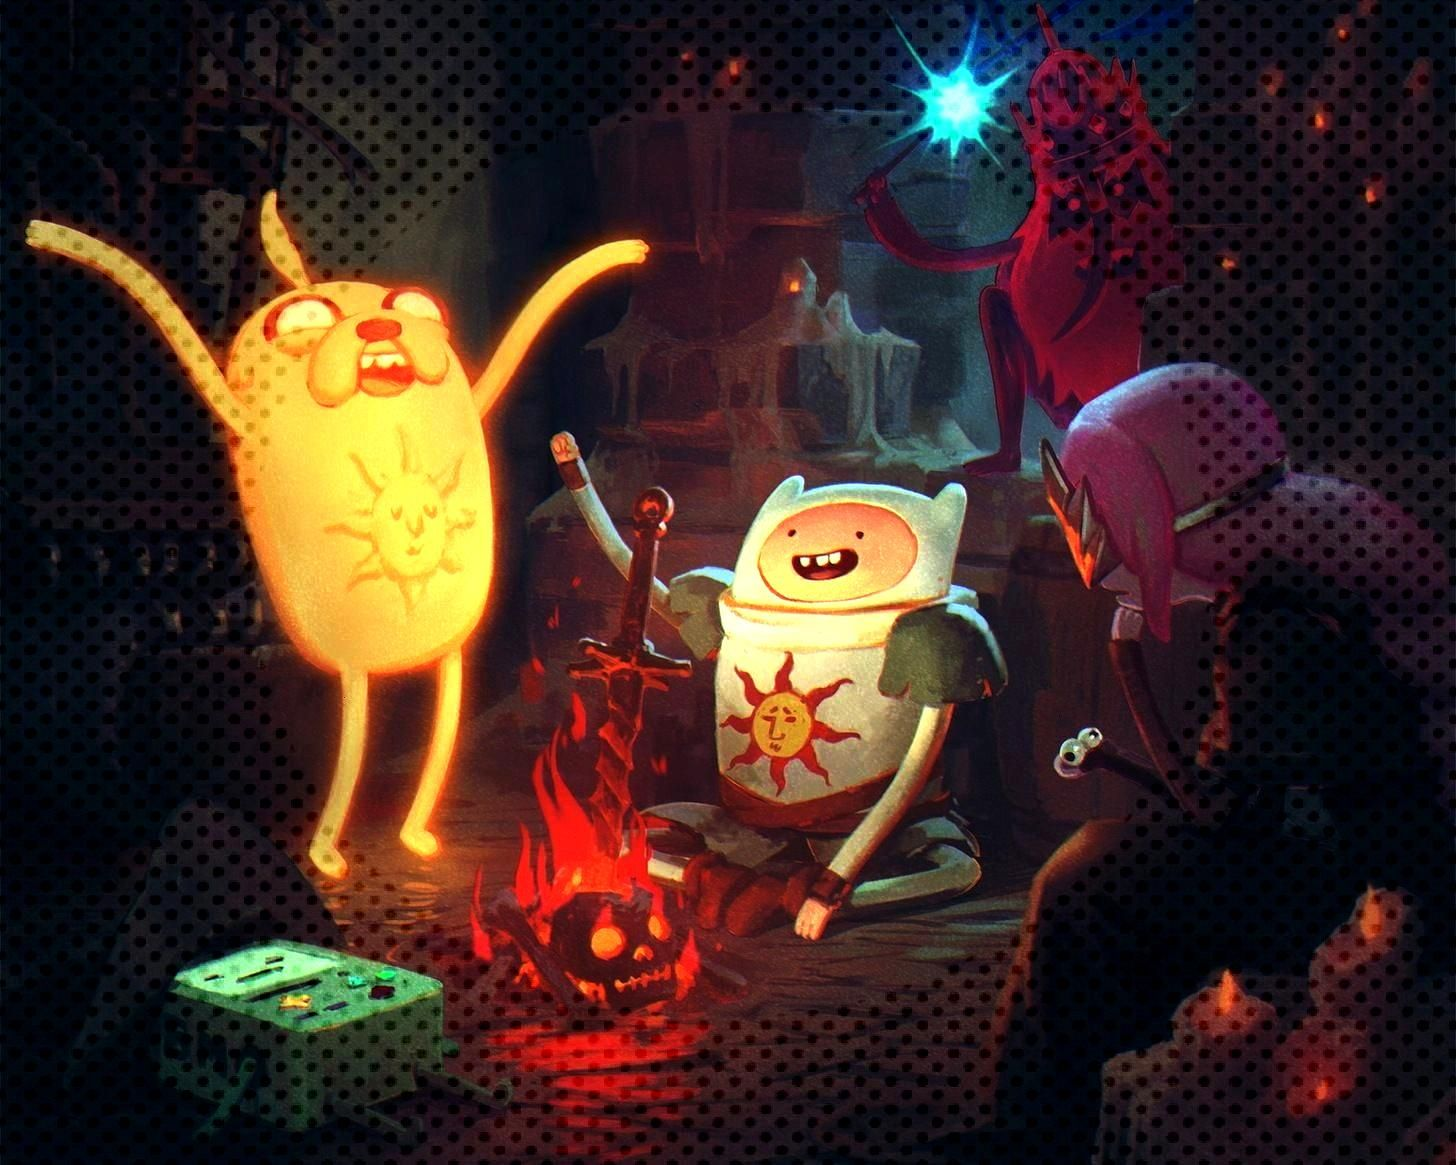 Show Wallpapers 040 Adventure Time, Game of Thrones, Luke Cage, Star Wars Rebels, Stranger Things,